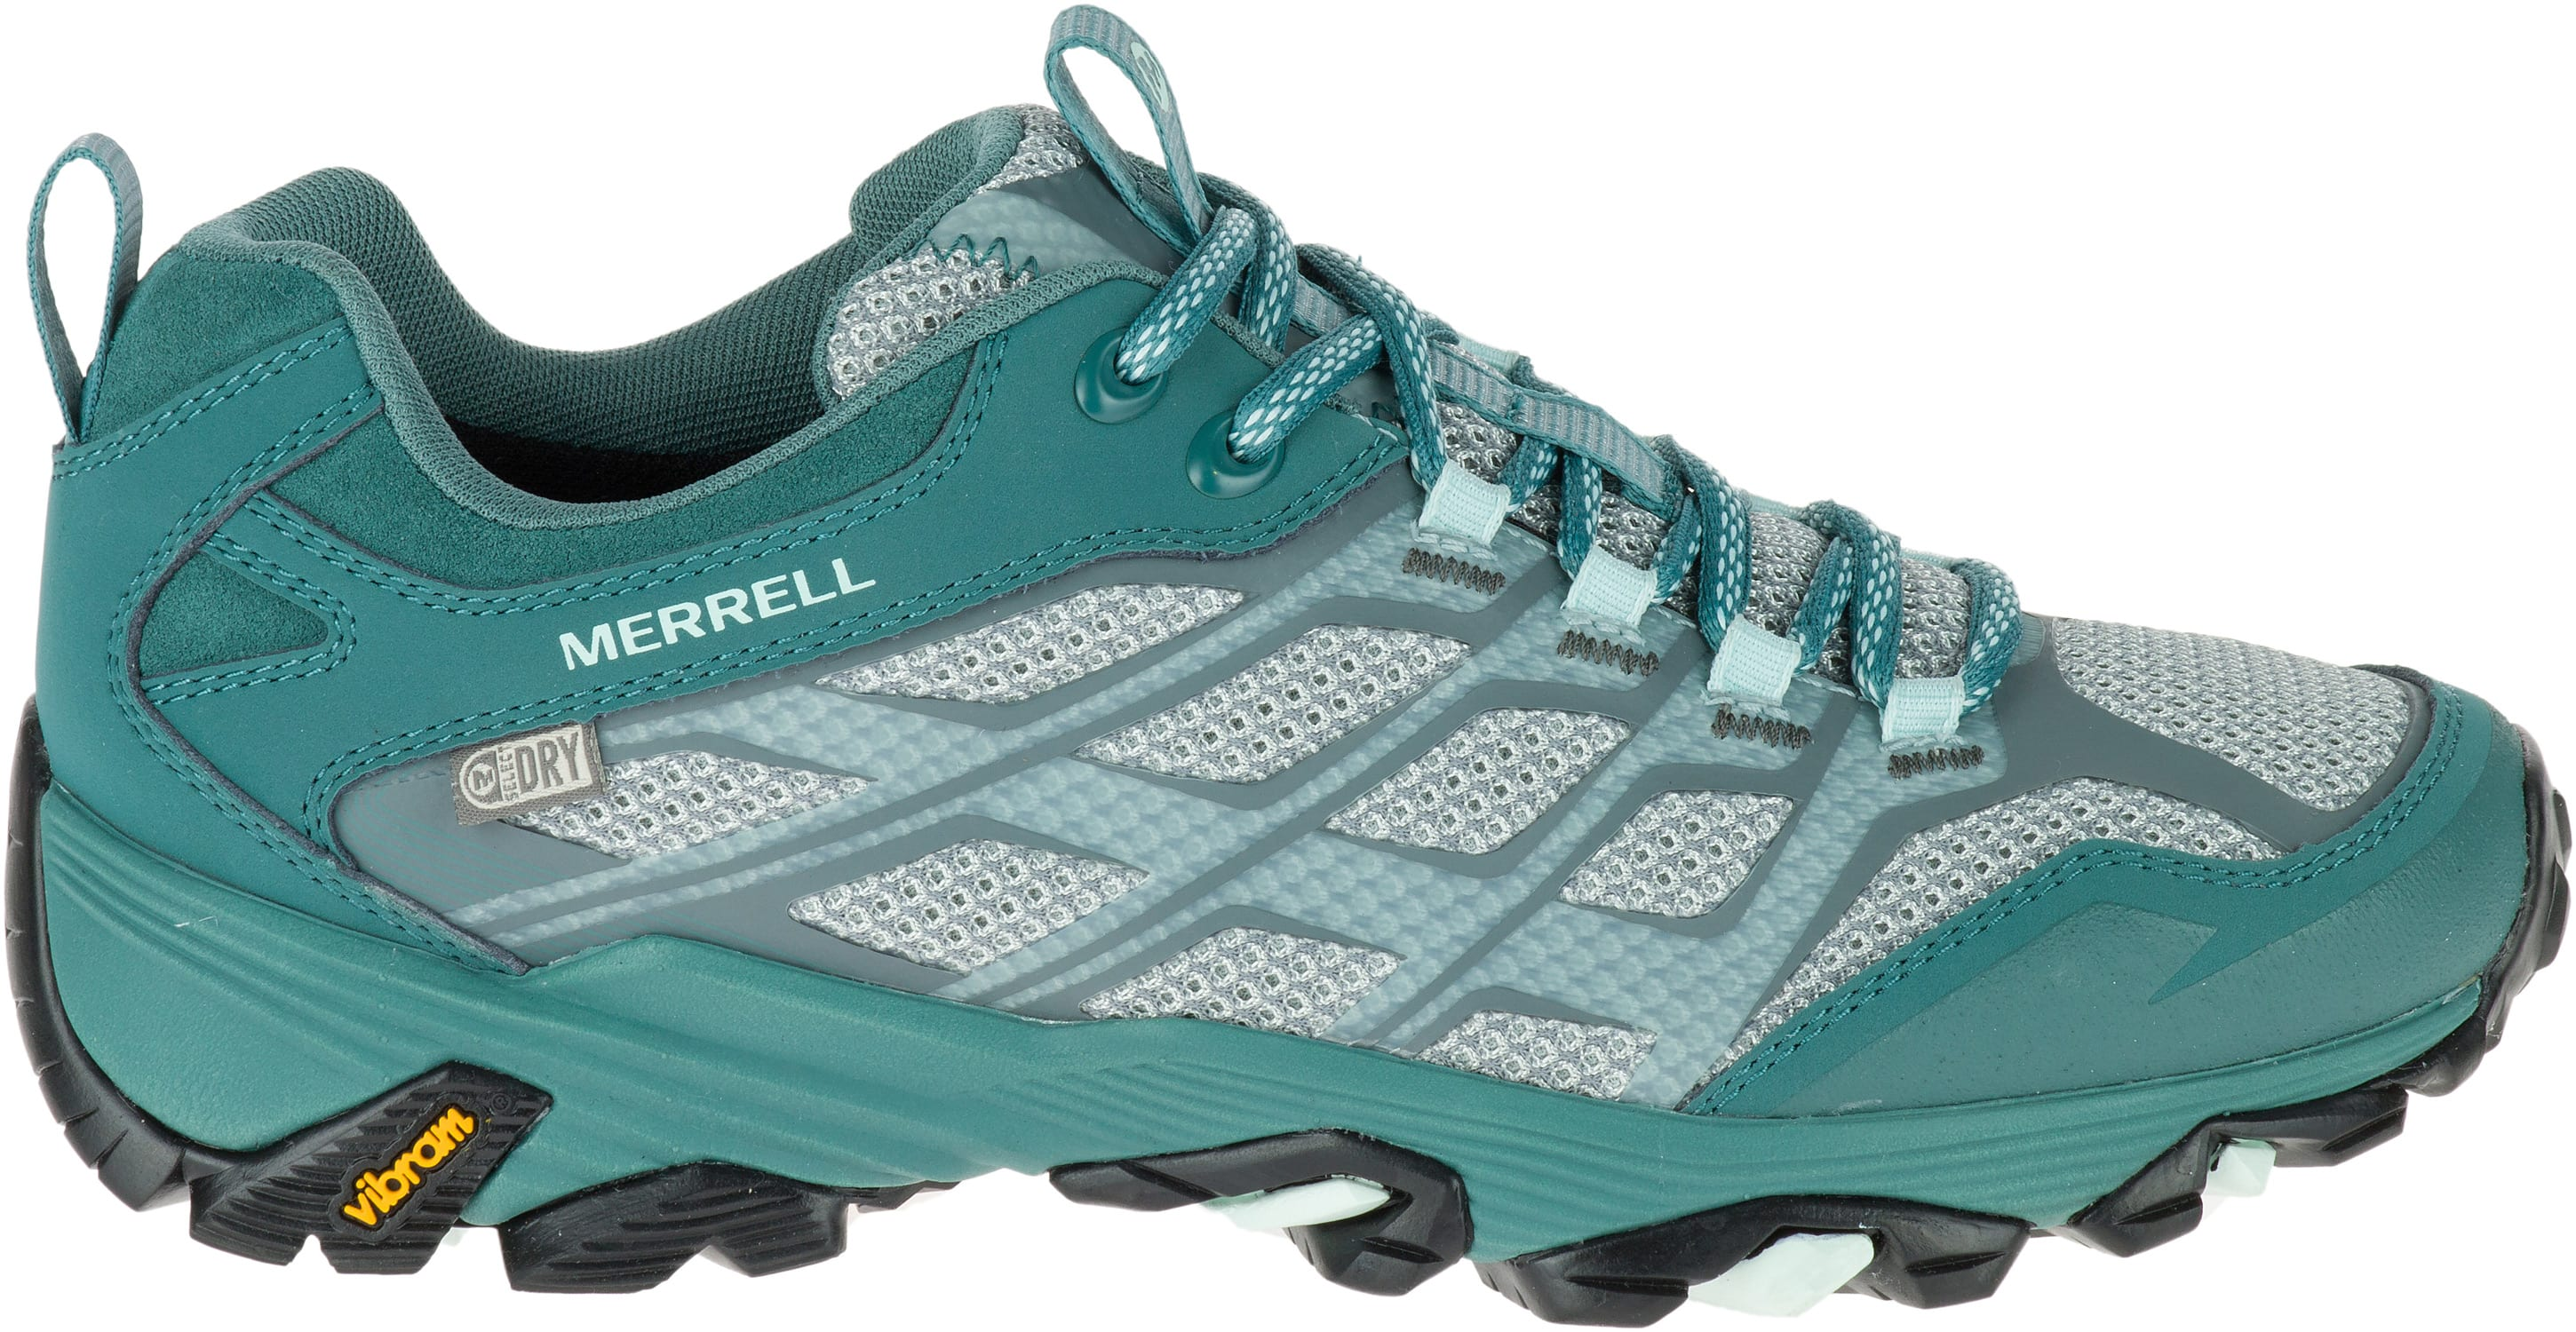 Best Water Shoes For Camping